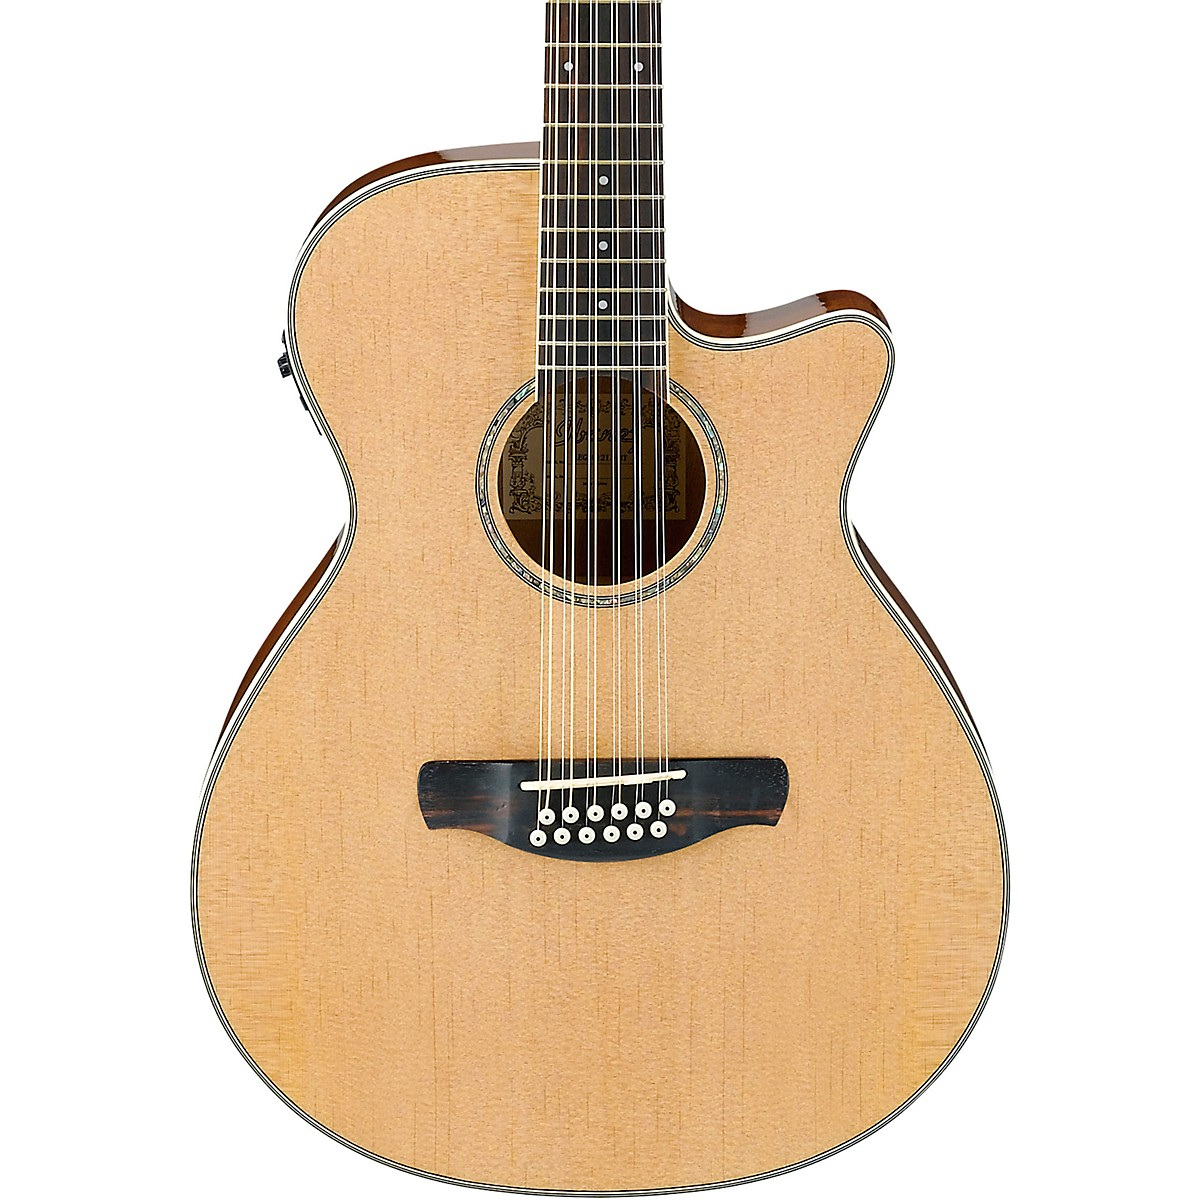 Ibanez AEG1812IINT 12-String Acoustic-Electric Guitar